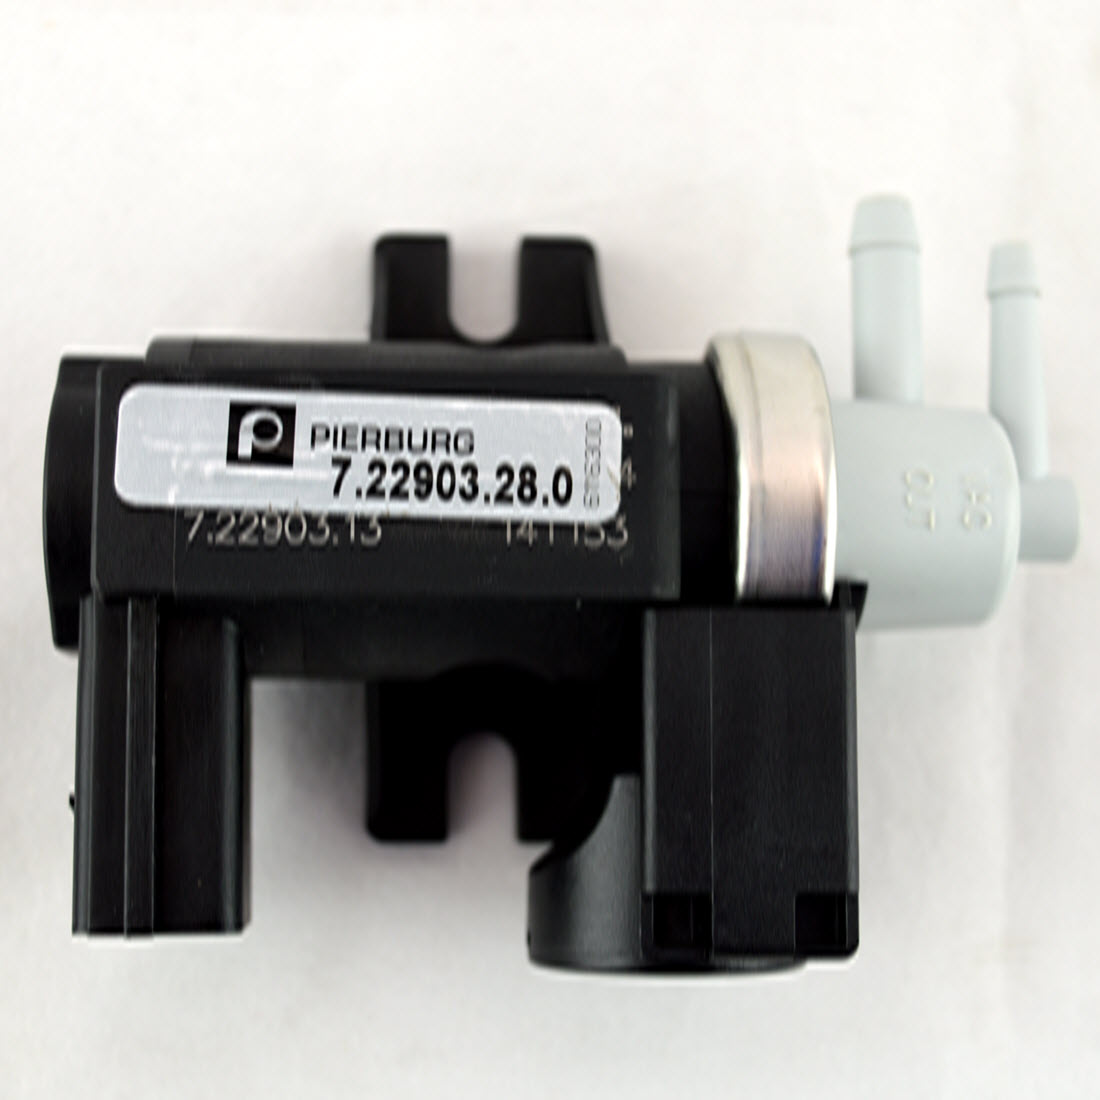 EGR valves and control solenoids